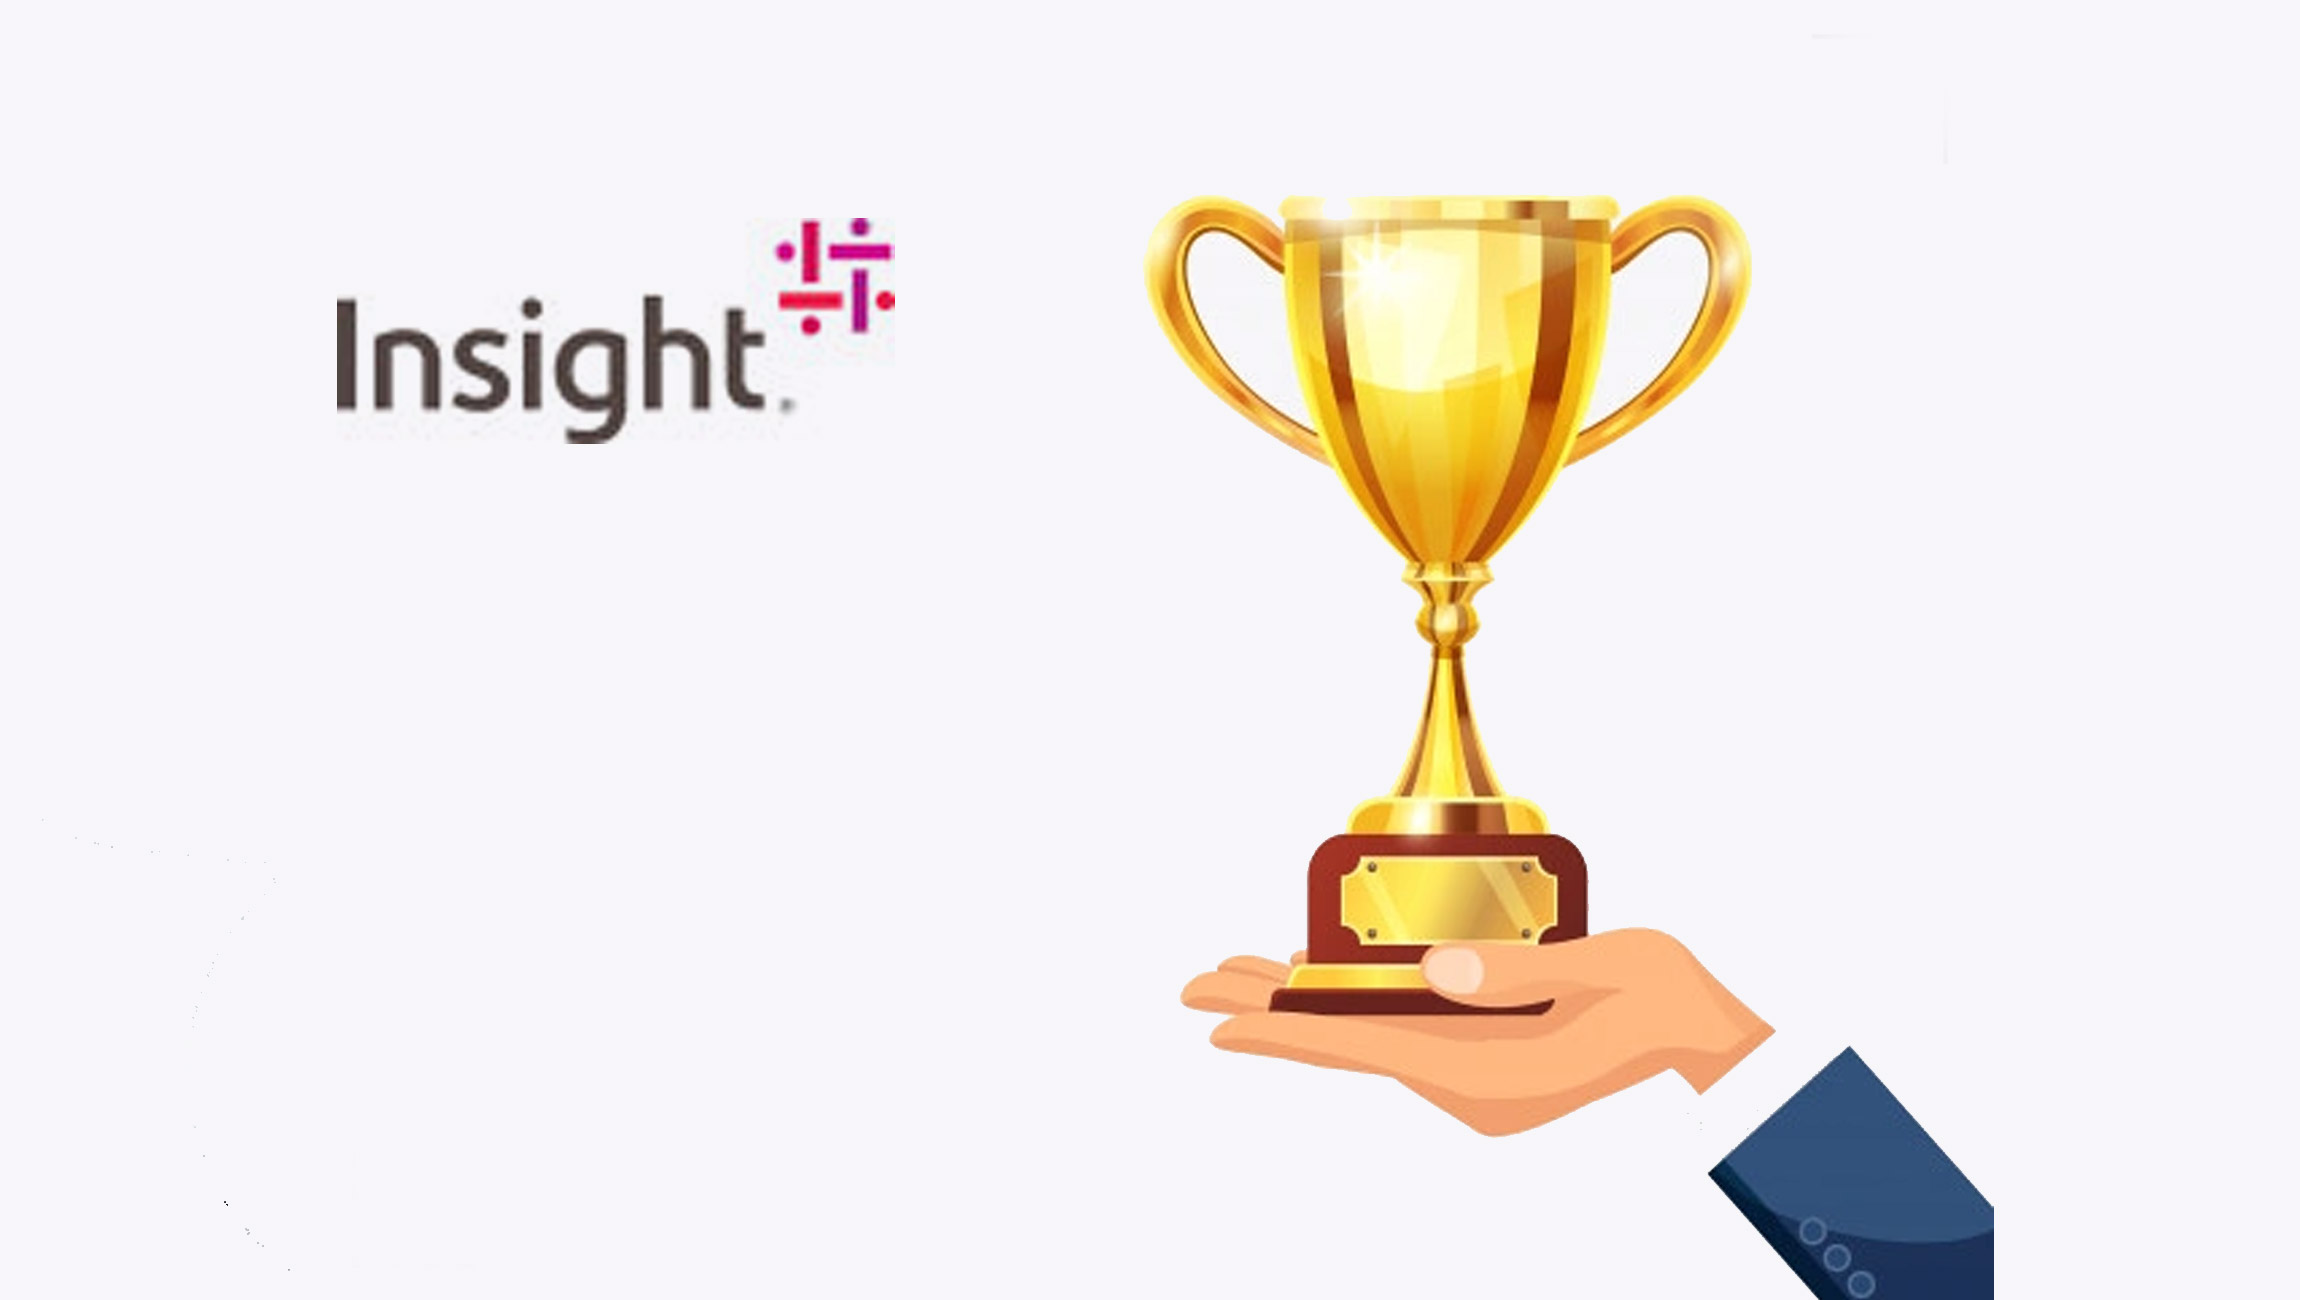 Insight-Earns-Two-Microsoft-Awards-for-Solutions-Empowering-the-Modern-Workplace